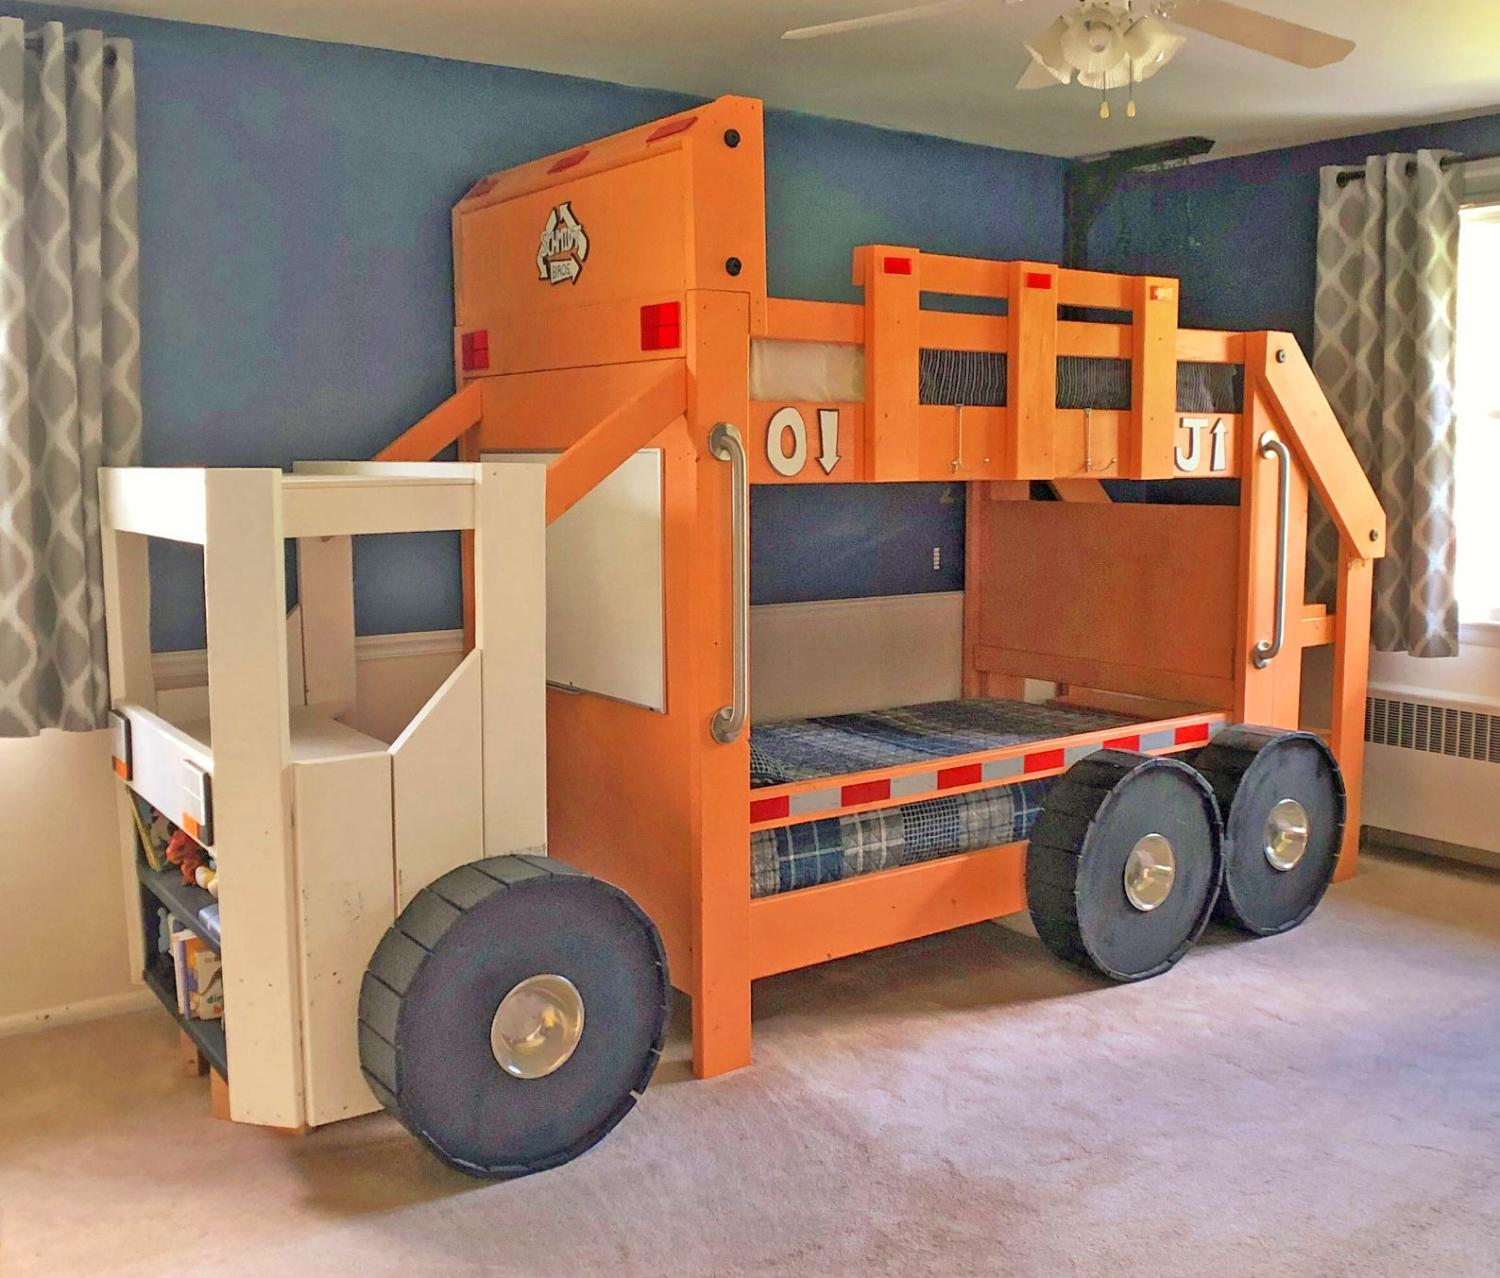 Picture of: This Garbage Truck Bunk Bed Has A Desk And Bookshelf In The Cabin Of The Truck